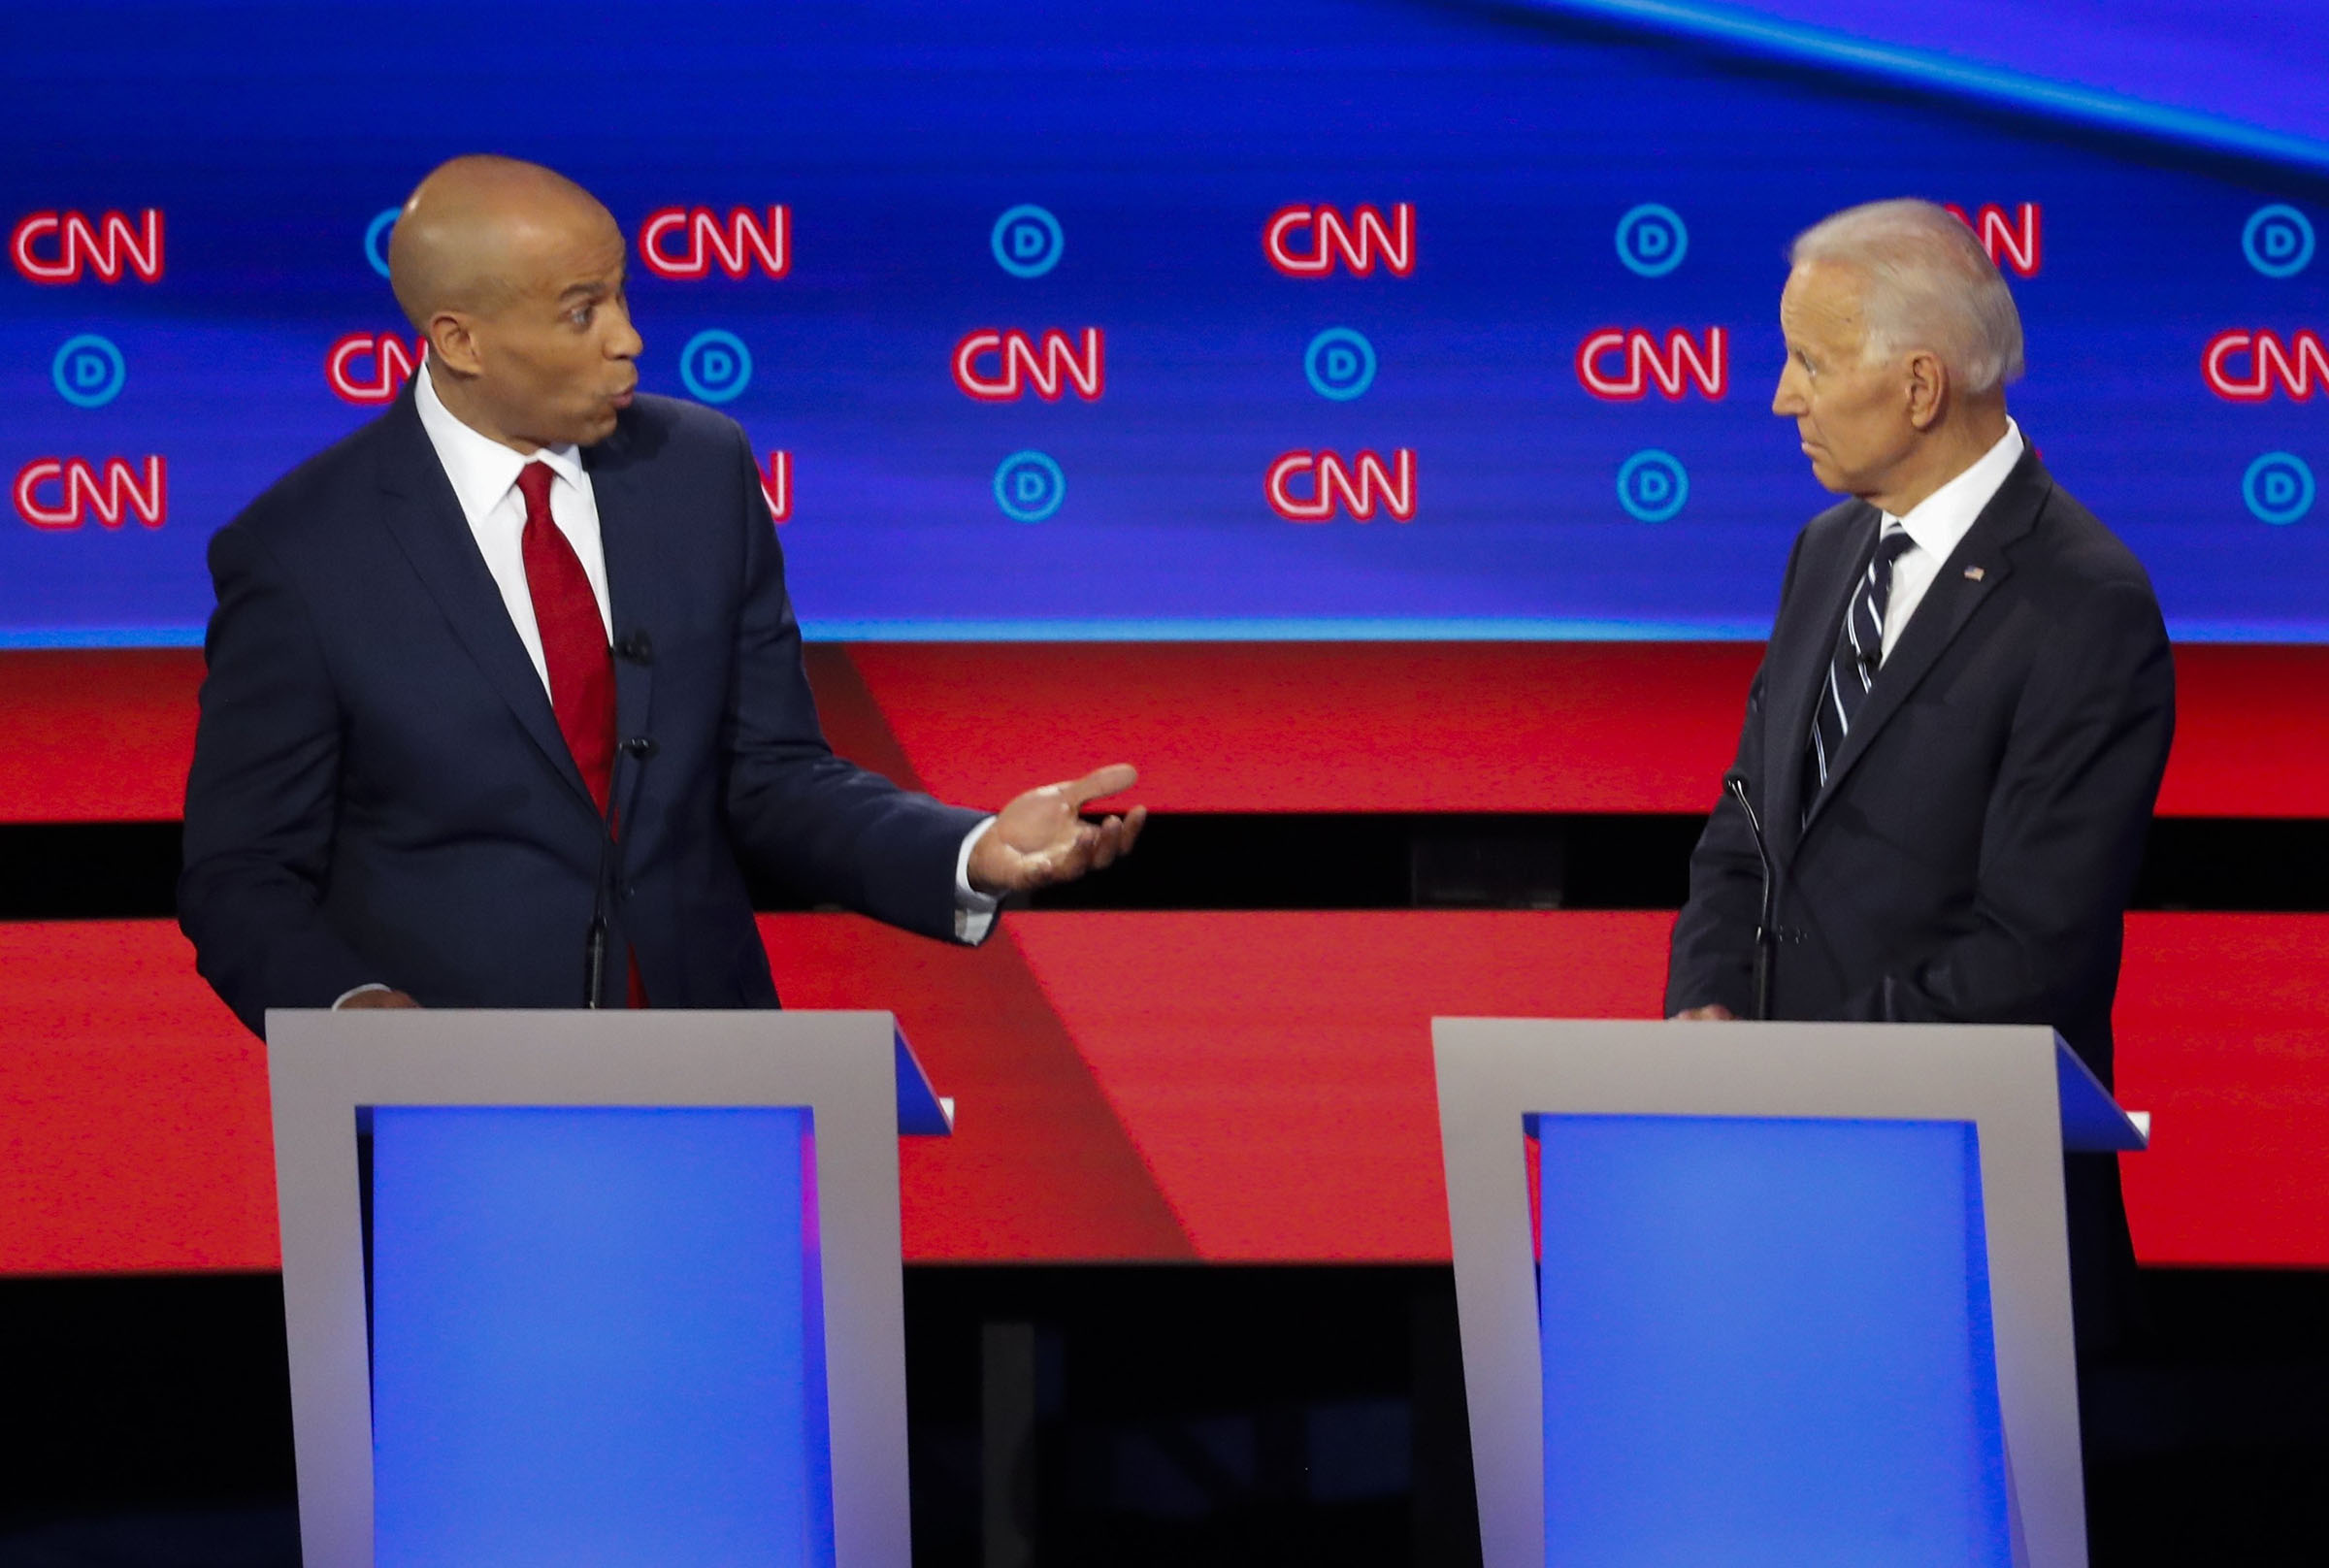 Sen. Cory Booker, D-N.J., speaks to former Vice President Joe Biden as they participate in the second of two Democratic presidential primary debates hosted by CNN Wednesday, July 31, 2019, in the Fox Theatre in Detroit.